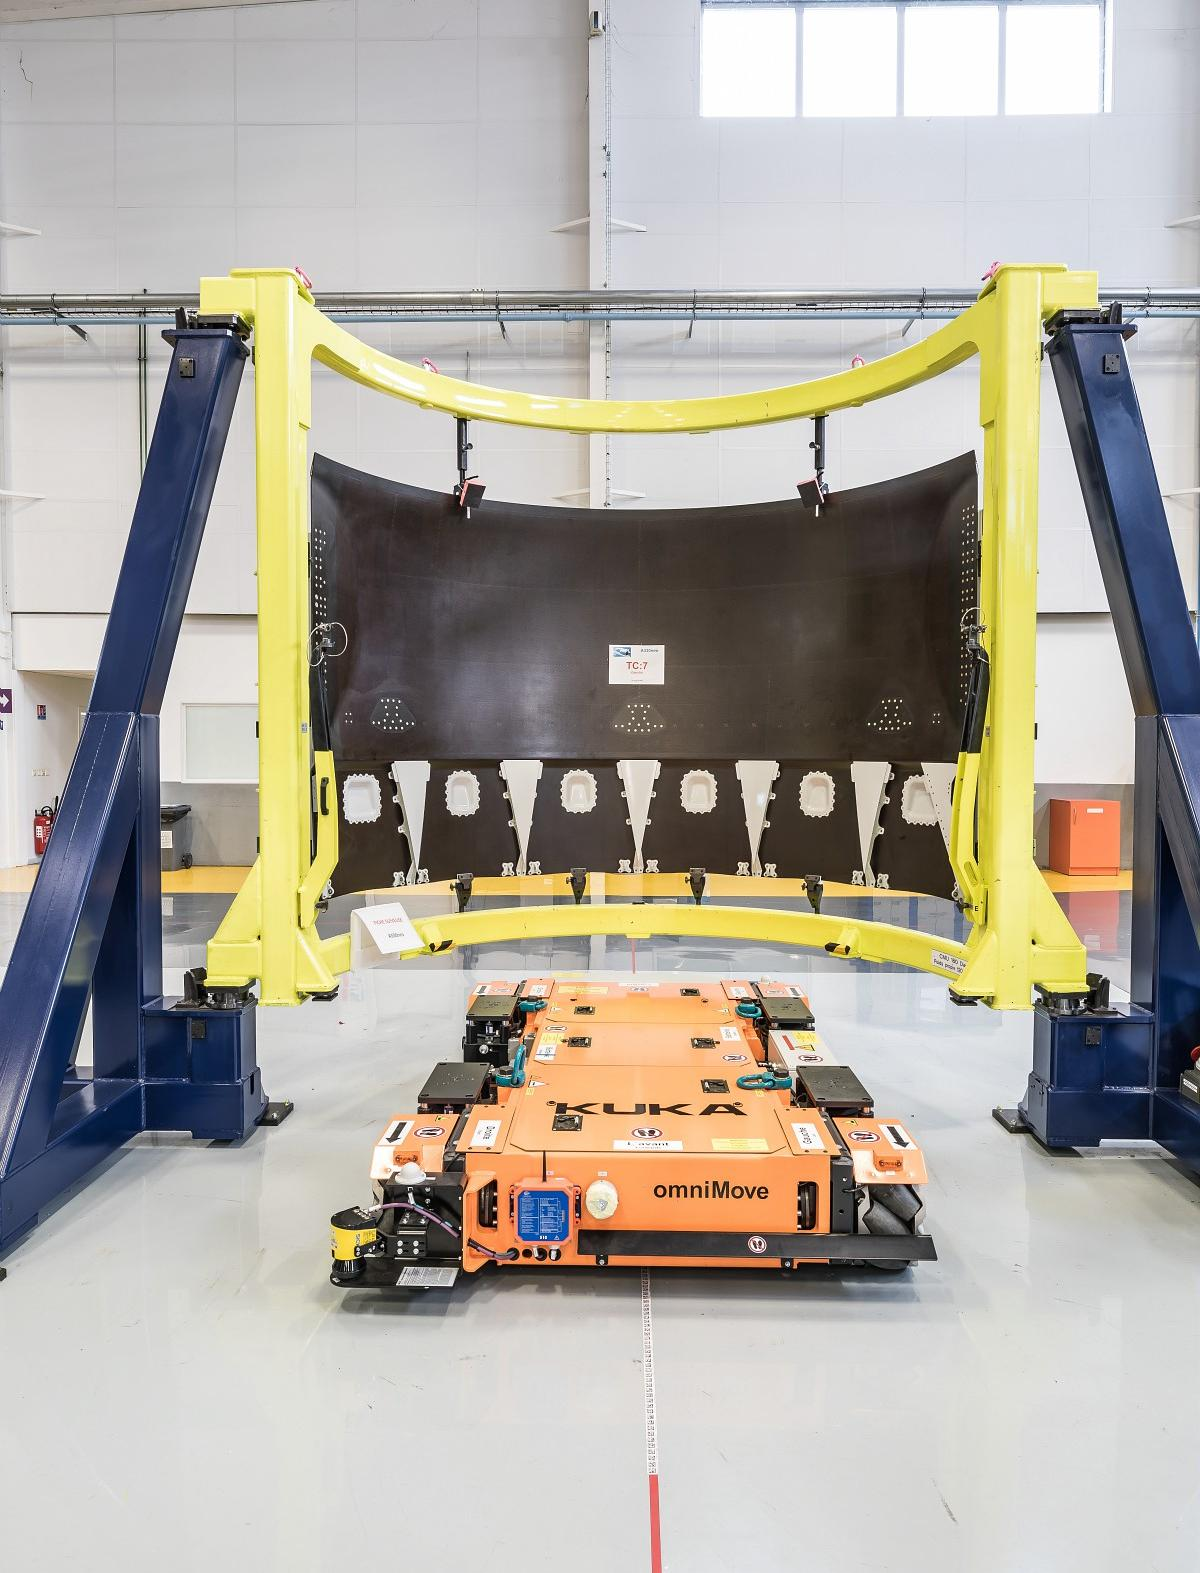 New assembly line dedicated to A330neo thrust reversers and omniMove, transport platform for heavy loads (Kuka)